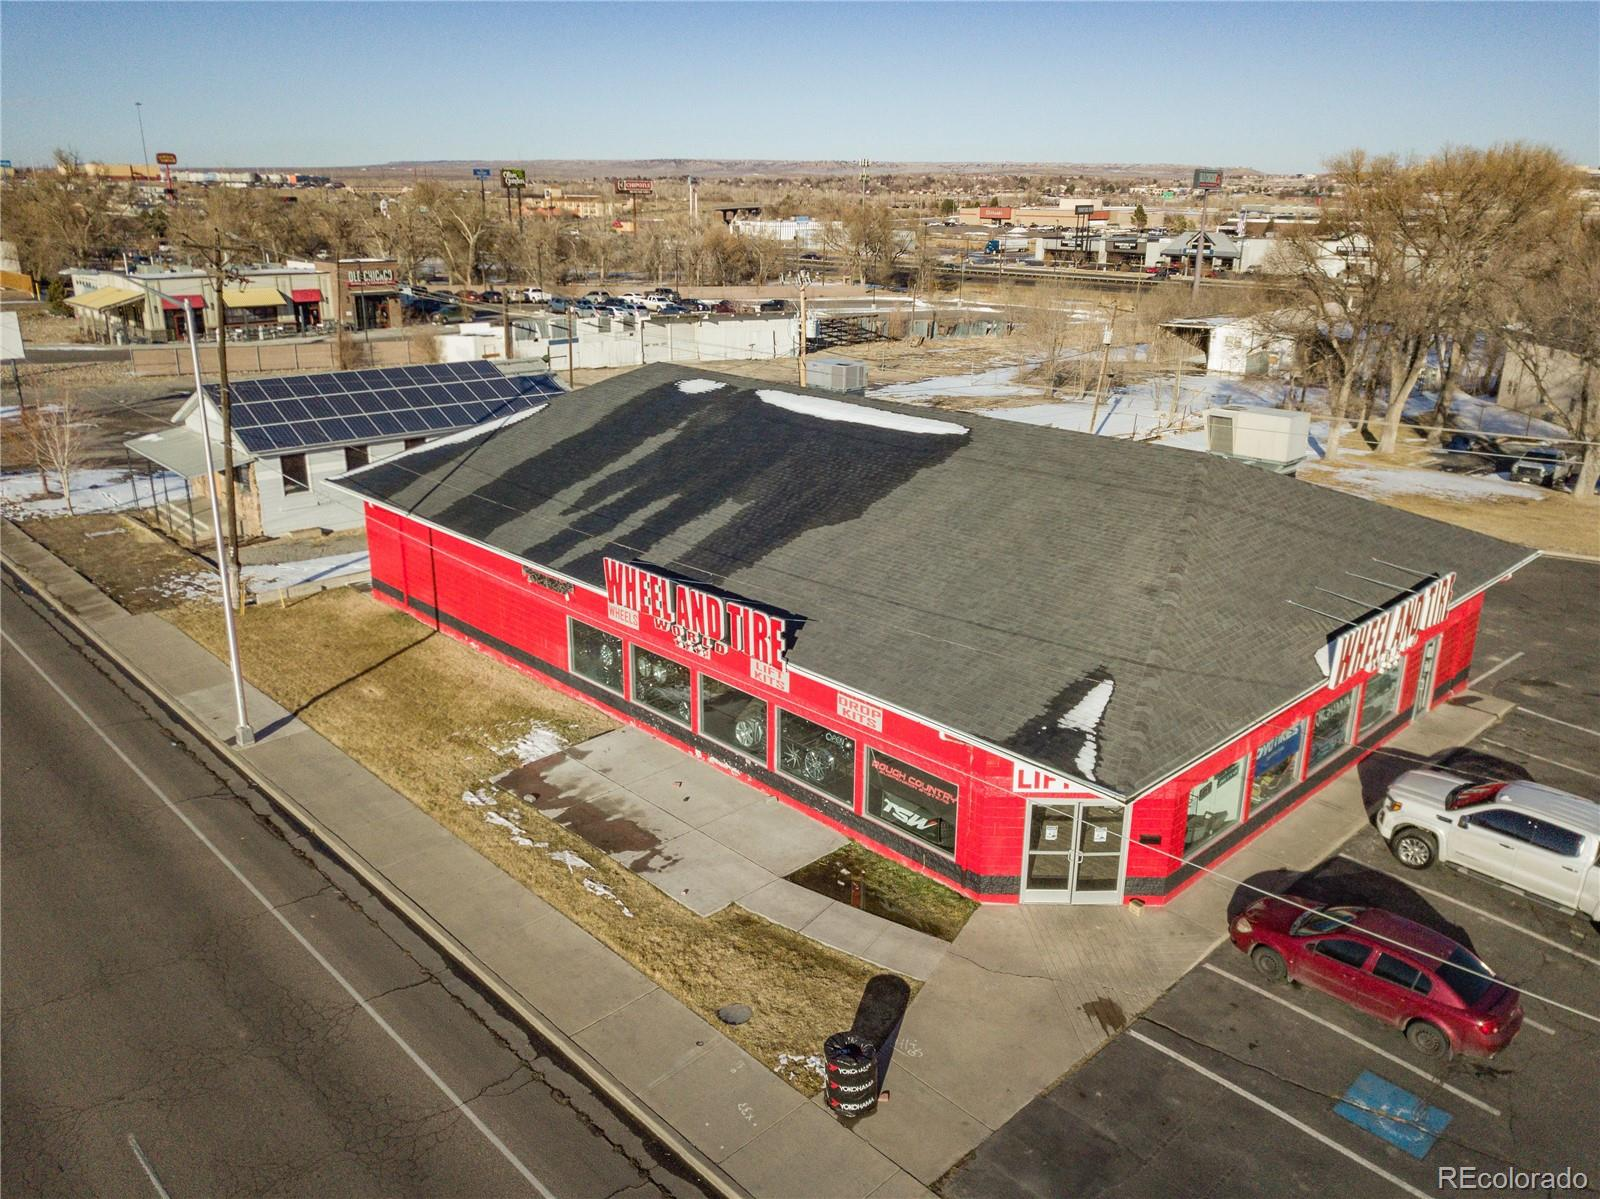 3 properties in one! 1st single story has 5368 sft and is recently vacant and 2nd building is a two story with 3600 sft on each floor and is a double net tenant with 4 years left on lease. The 3rd is a 1/2 acre of vacant land opening up to the paved frontage road!